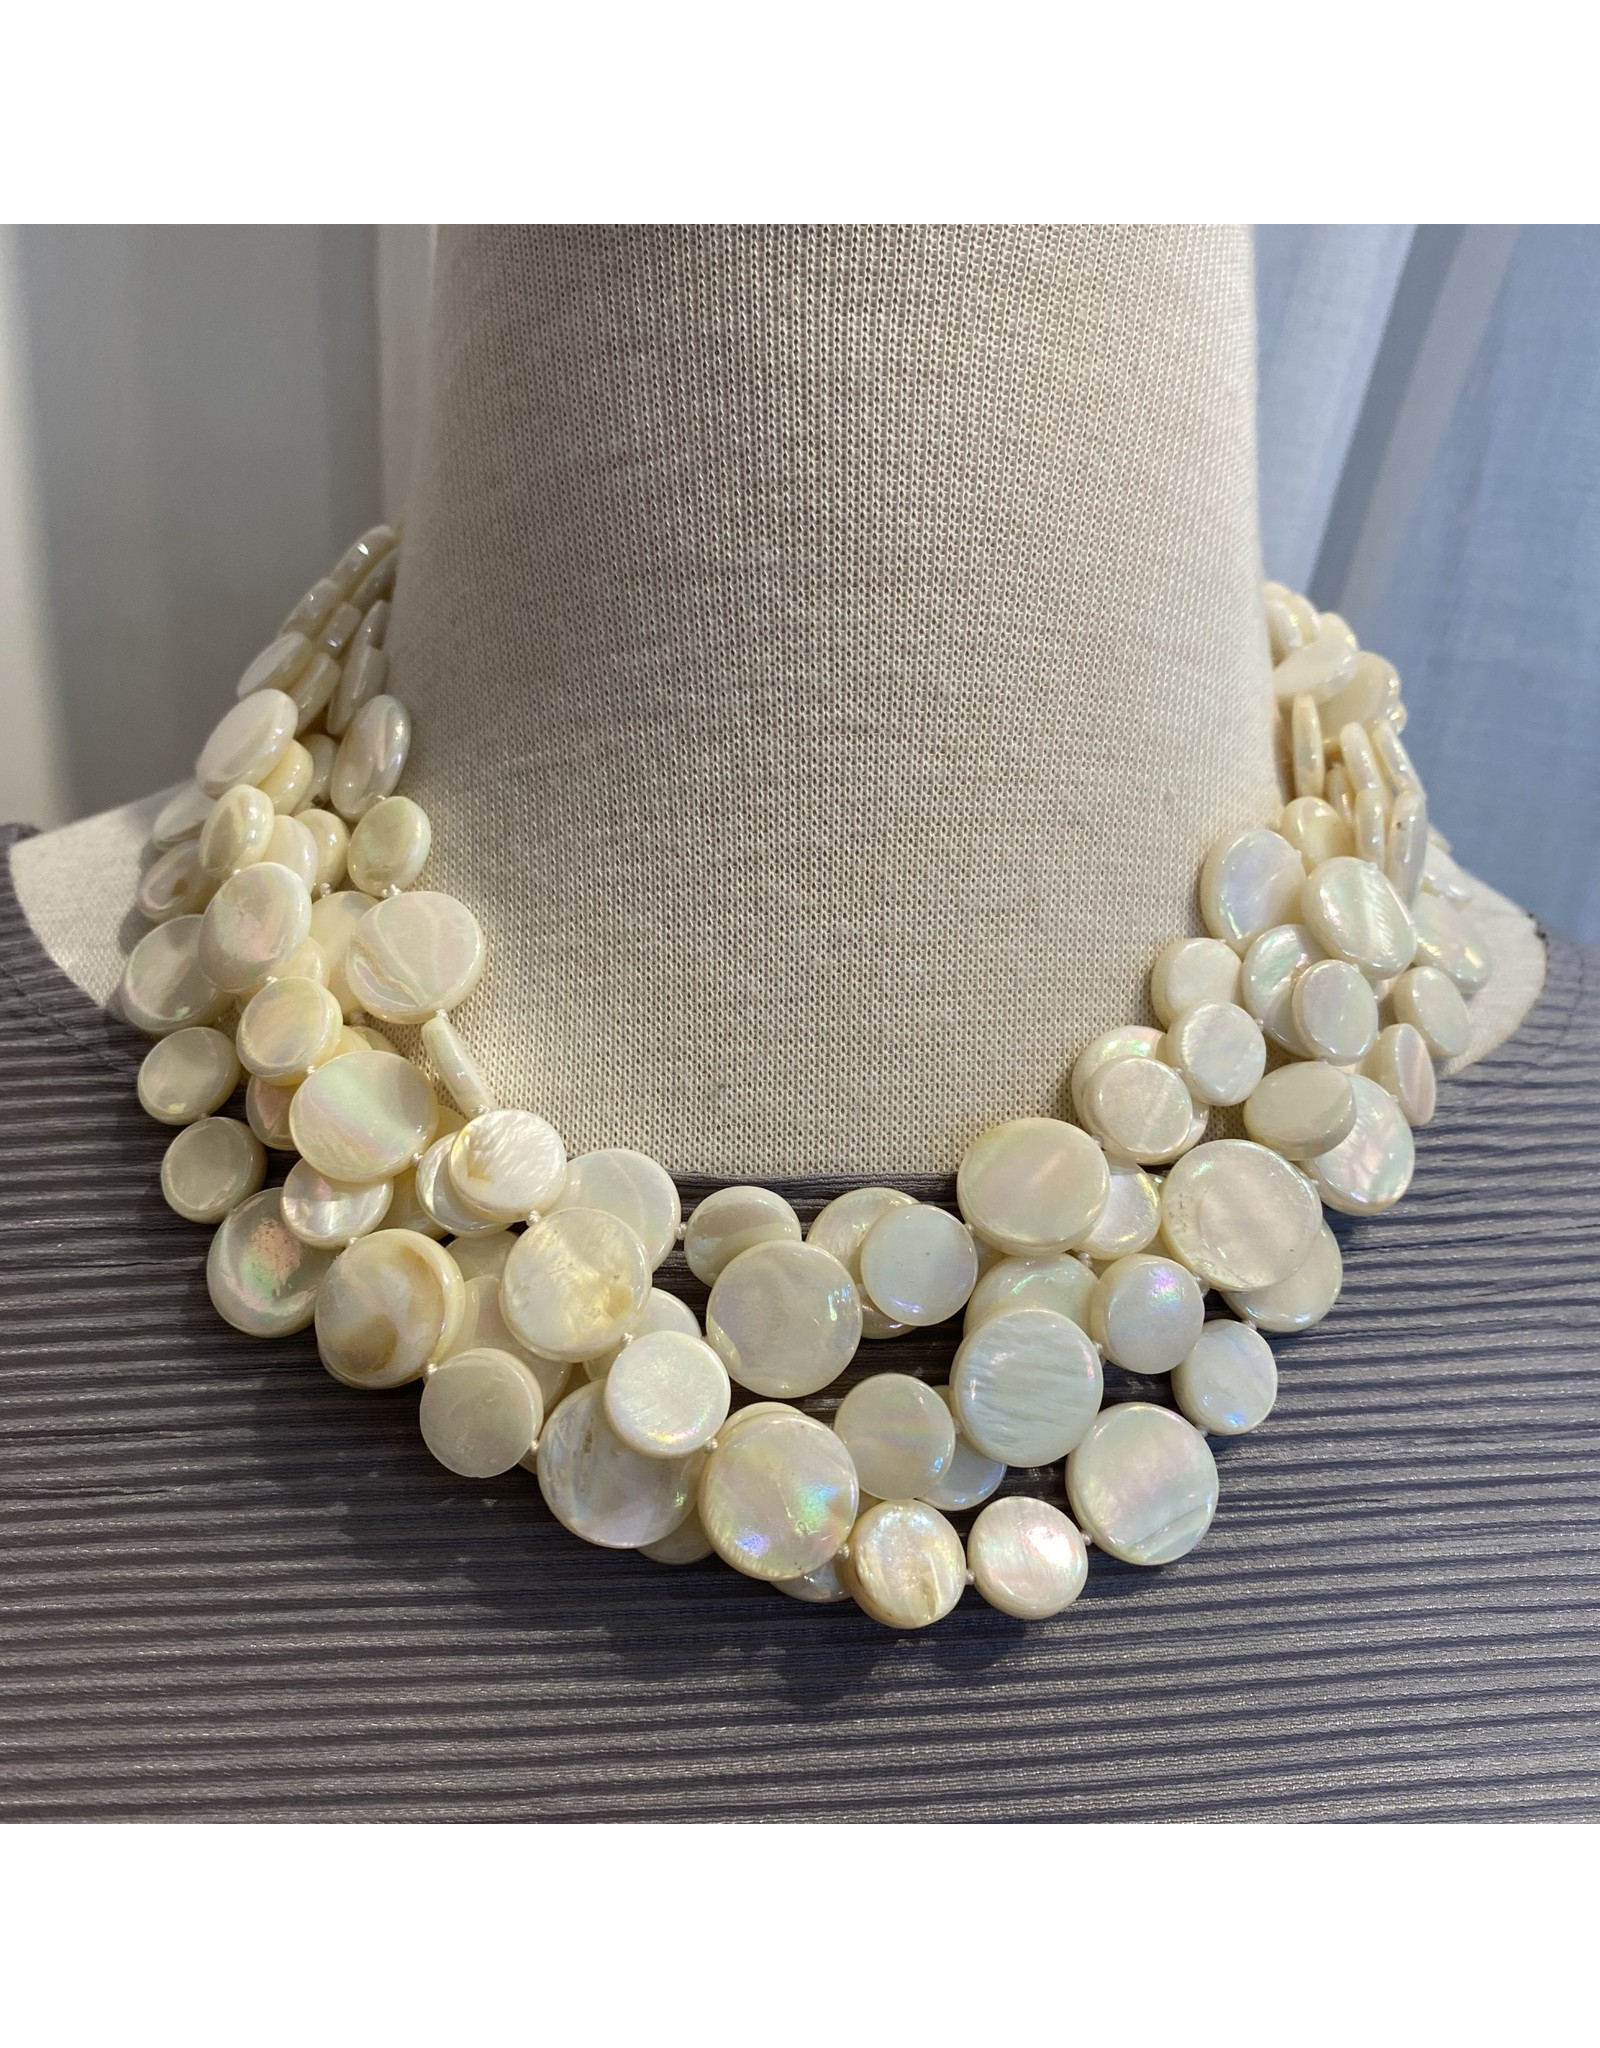 Sea Lily SeaLily: Strands Mother of Pearl